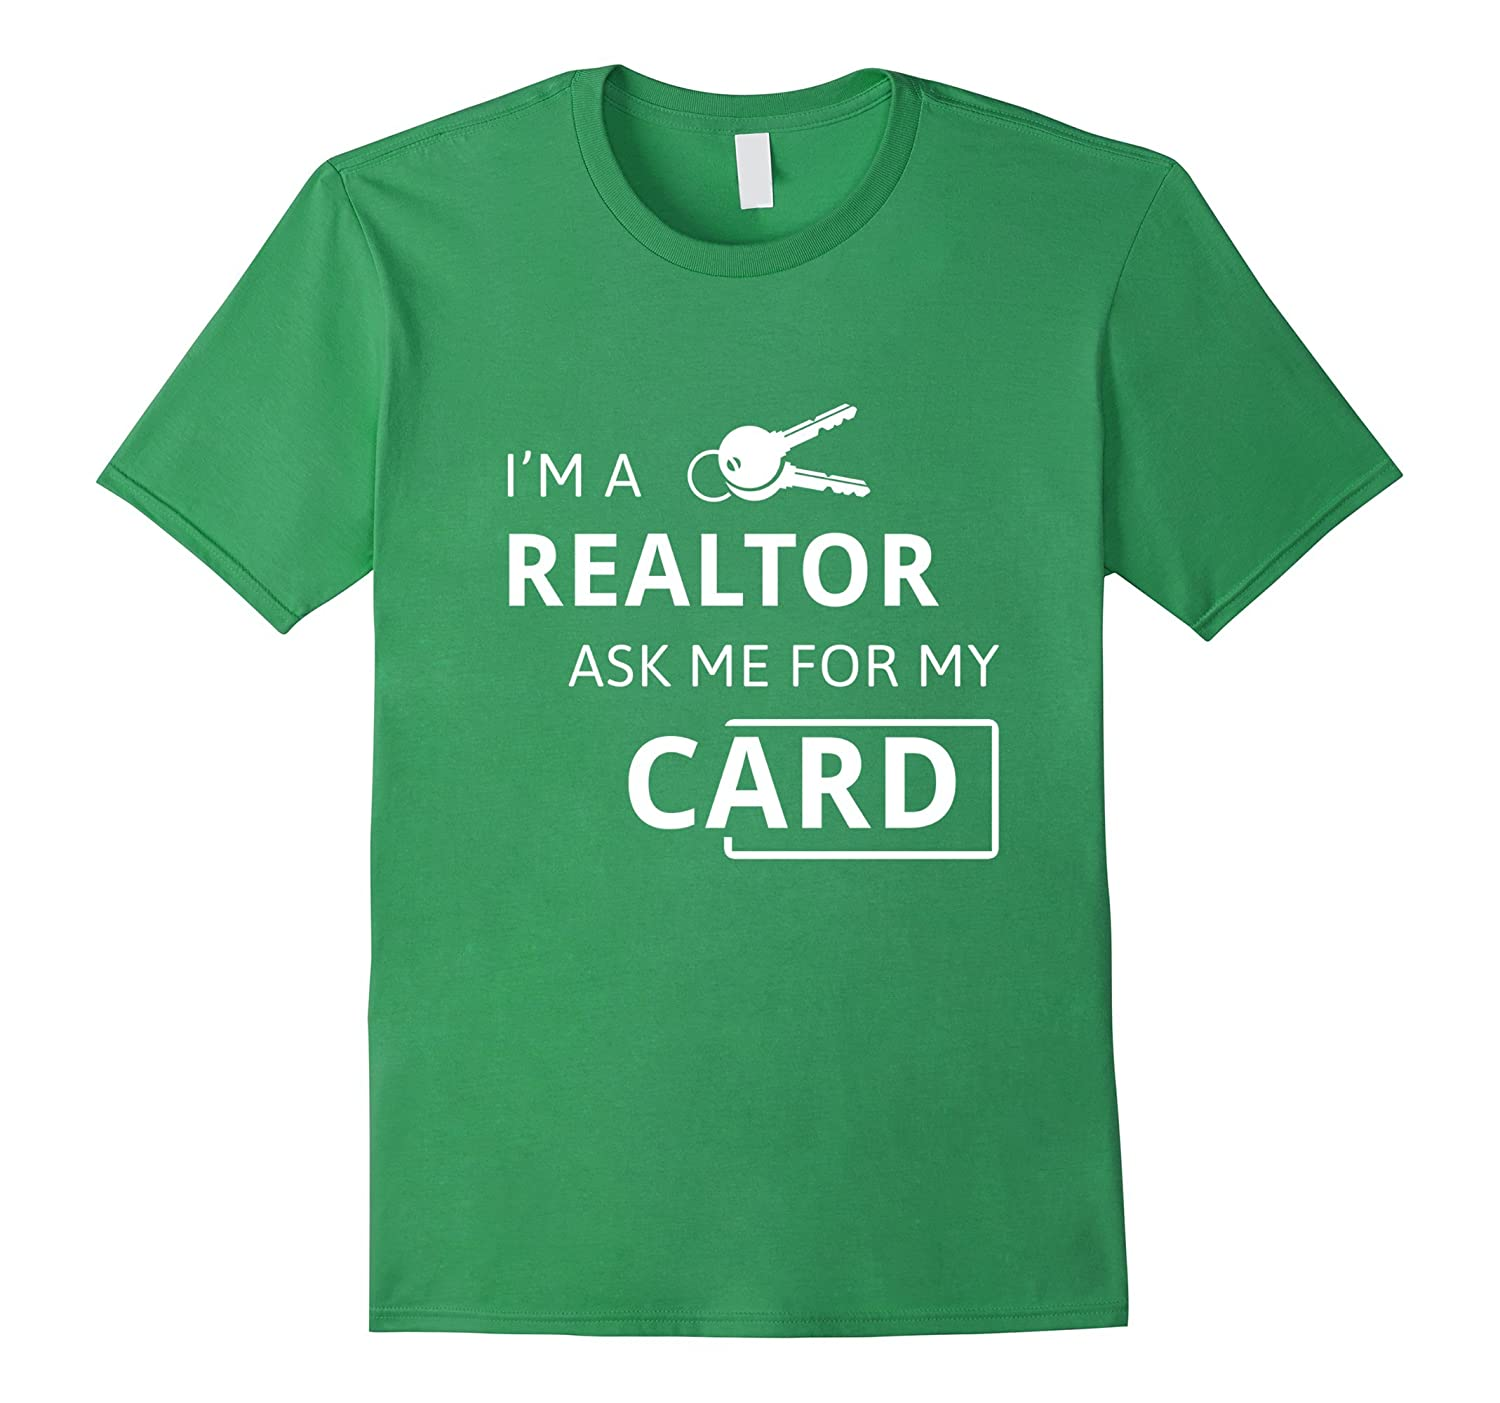 Real estate agent – I'm a Realtor ask me for my card T-shirt